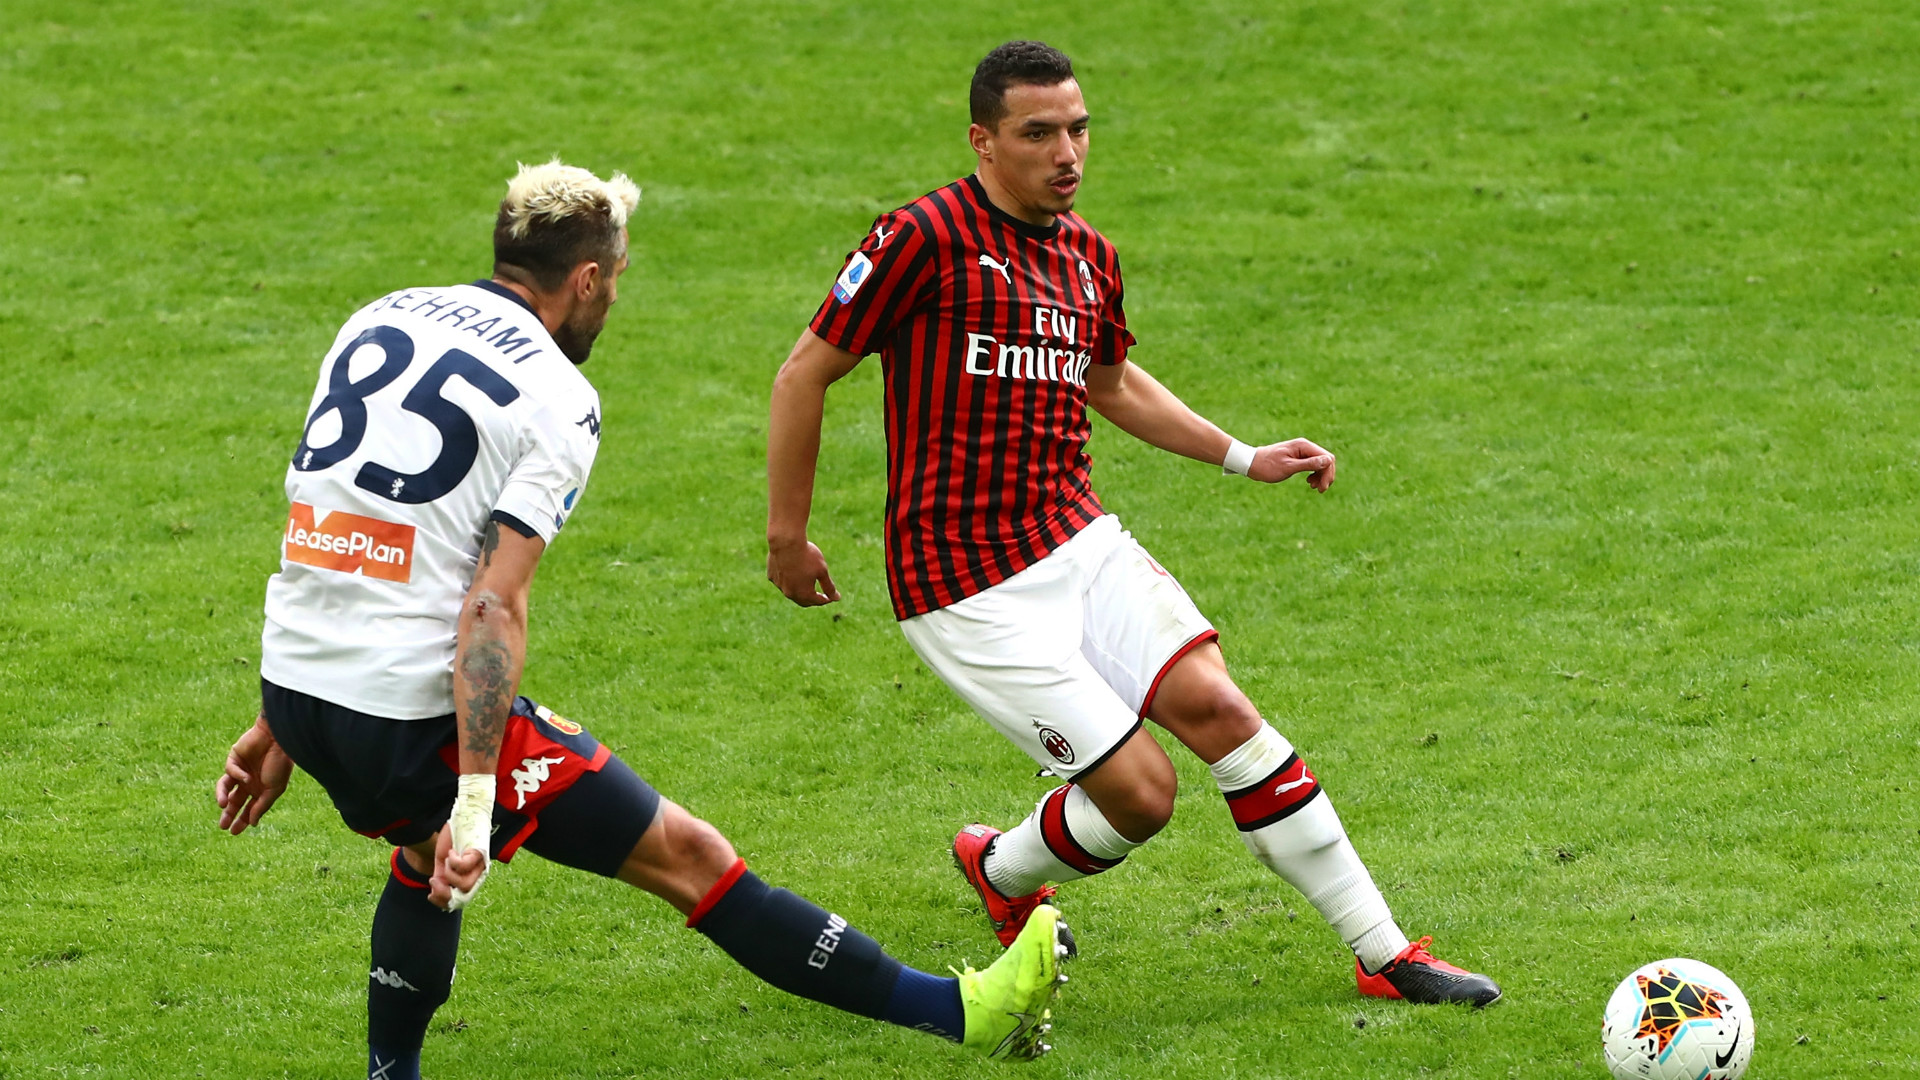 'You are at the heart of everything' - Bennacer on playing Pirlo's Regista role at AC Milan